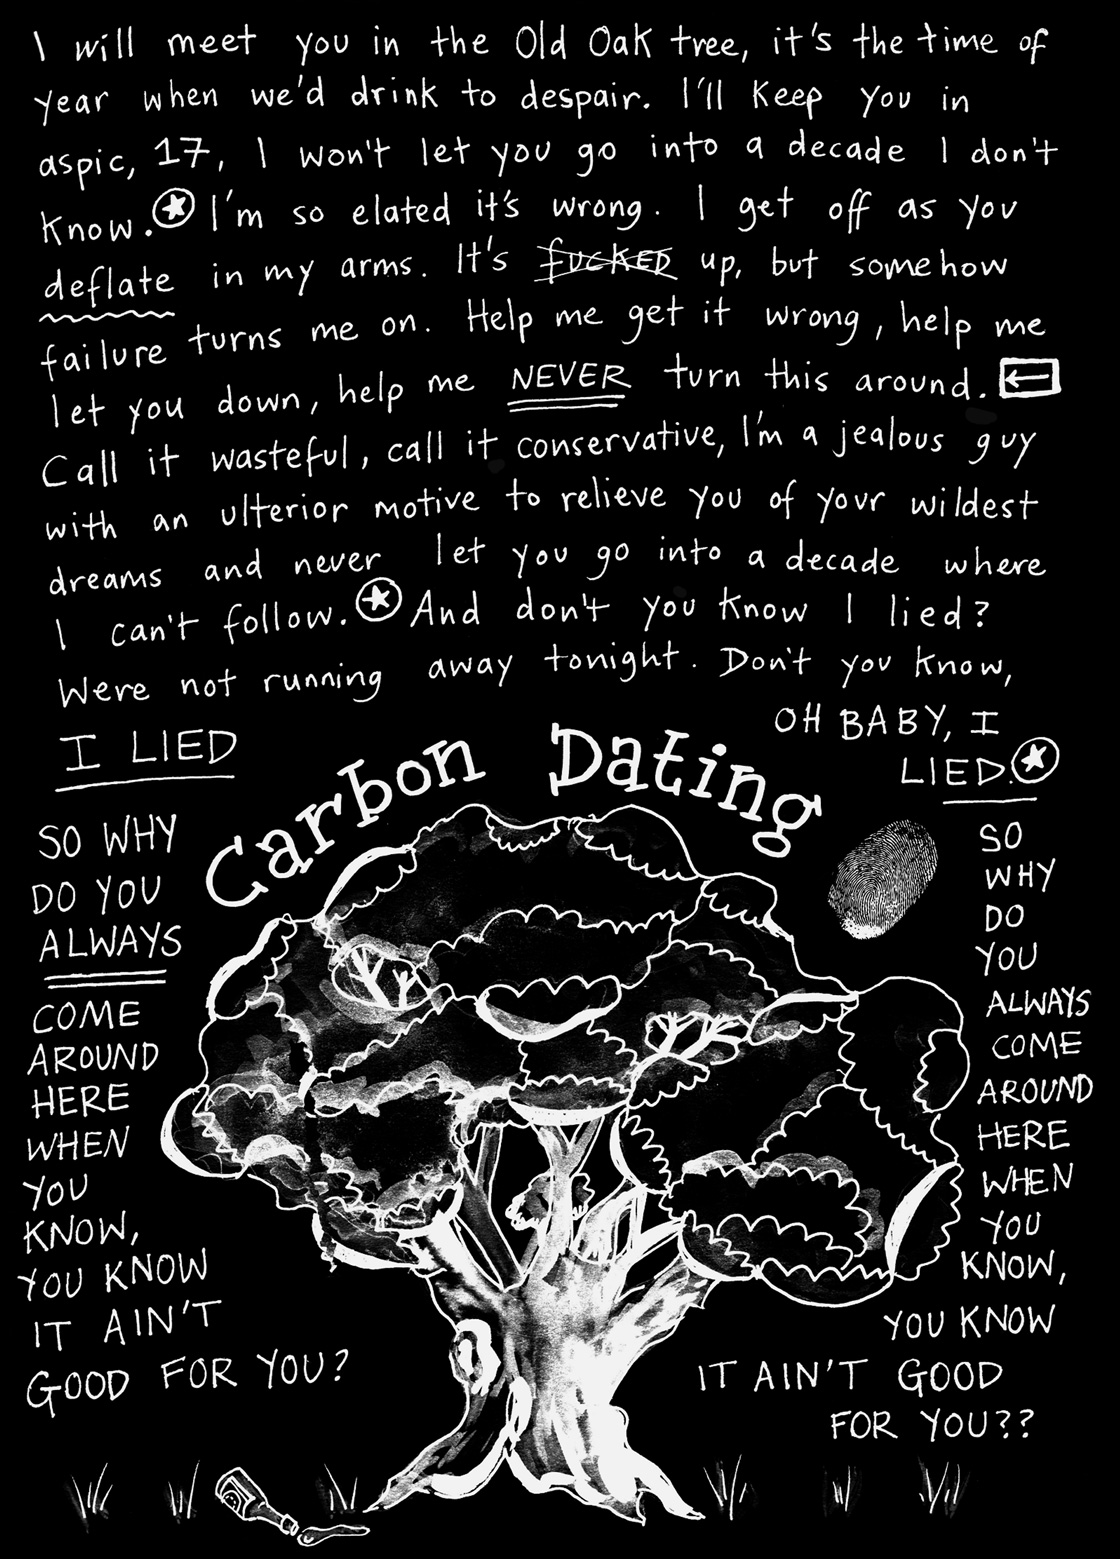 Carbon Dating Lyrics